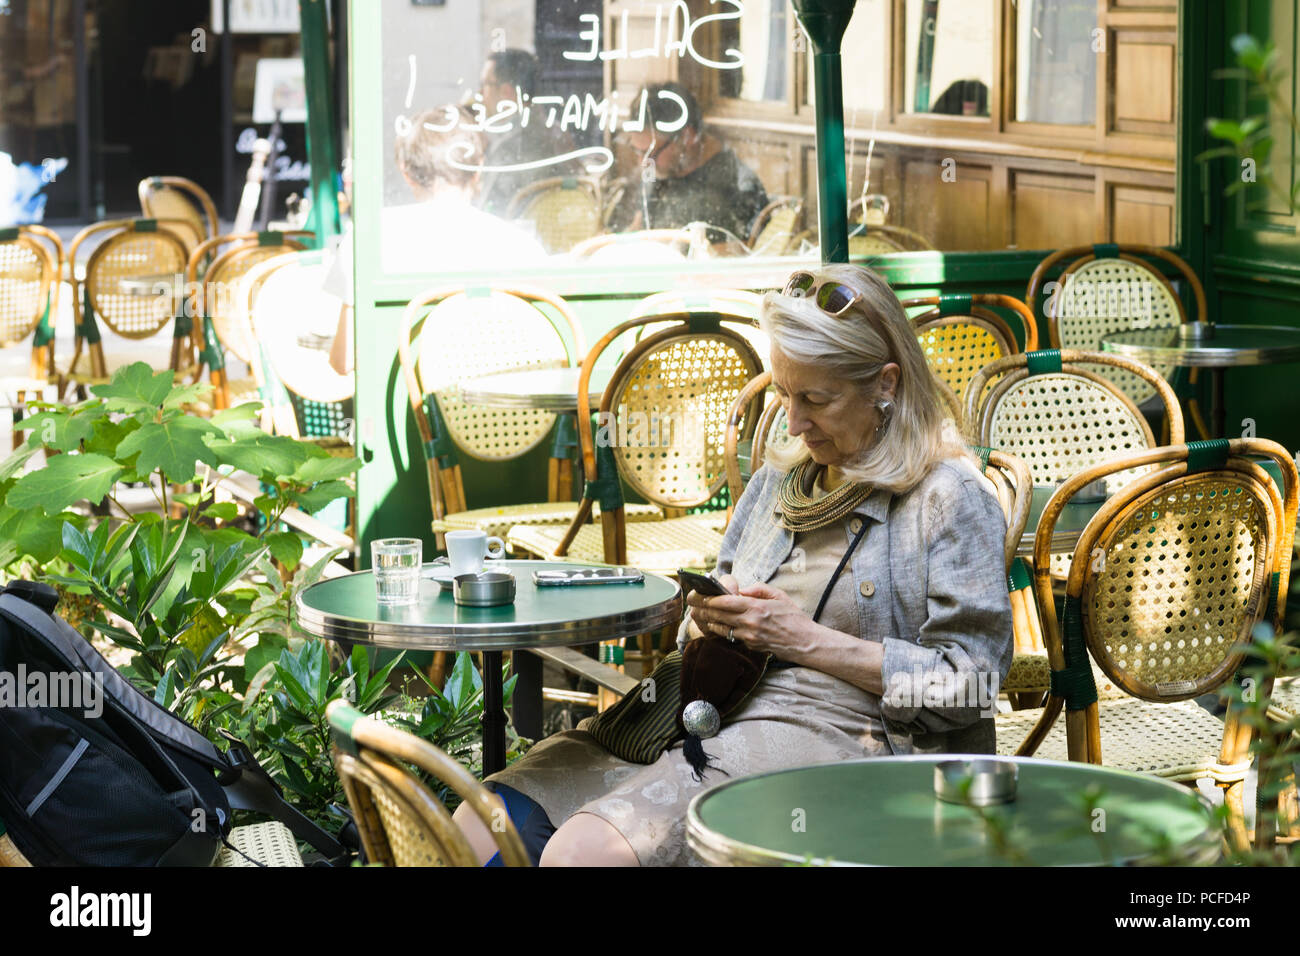 Parisian Woman Checking Her Phone And Drinking Coffee At La Chaise